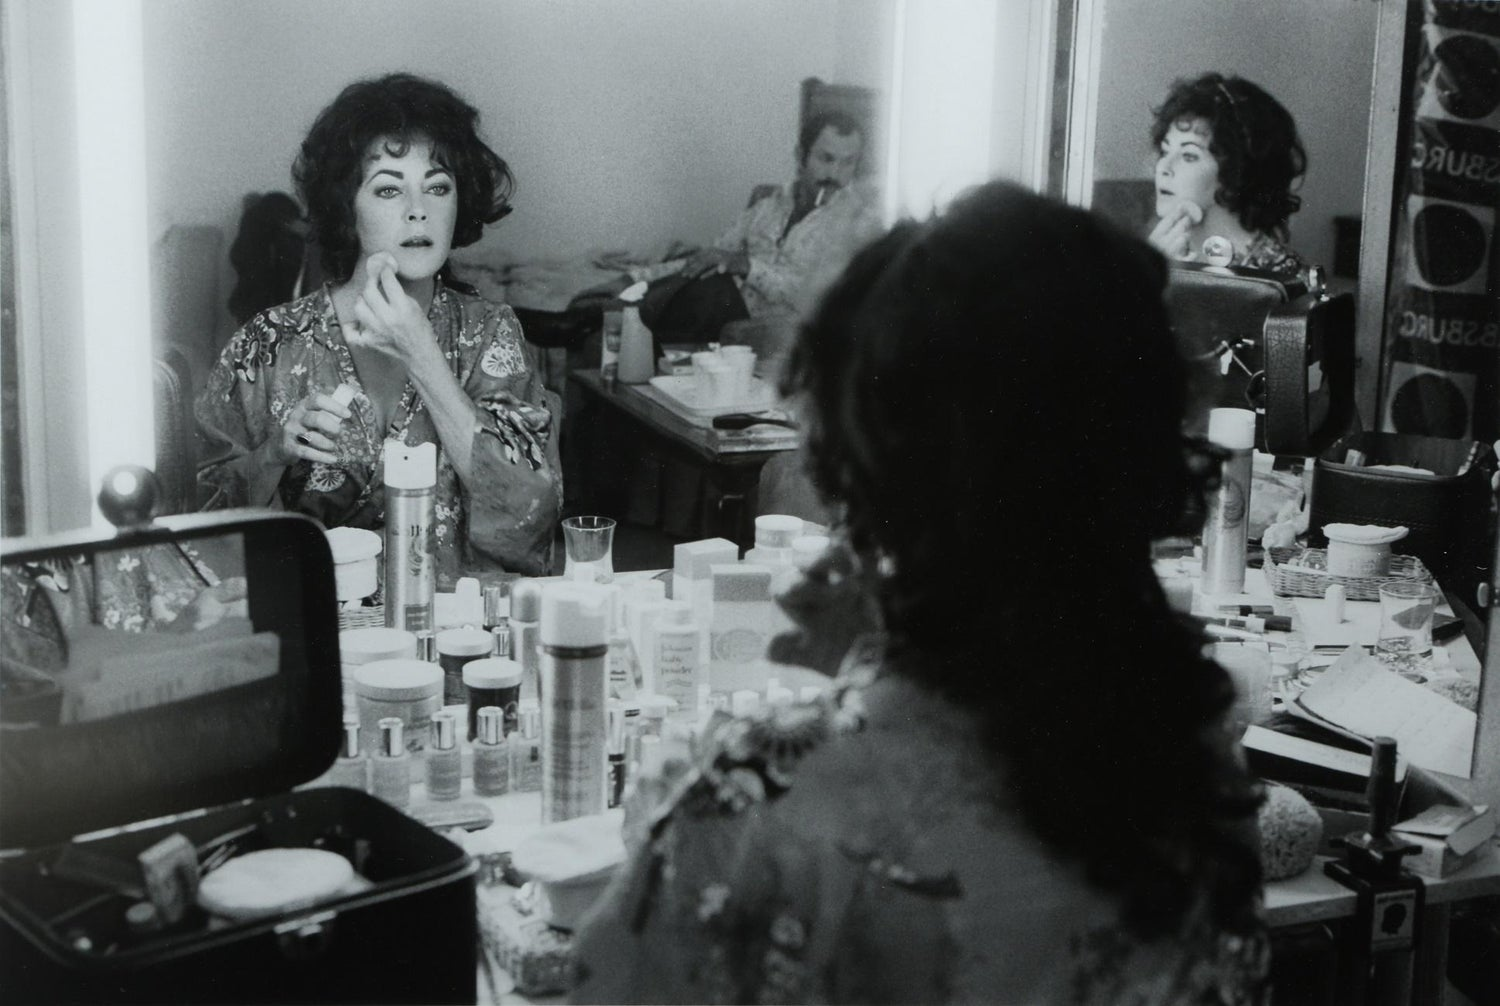 Amy O Neill Nude terry o' neill photograph of elizabeth taylor in black and white, edition  2/50